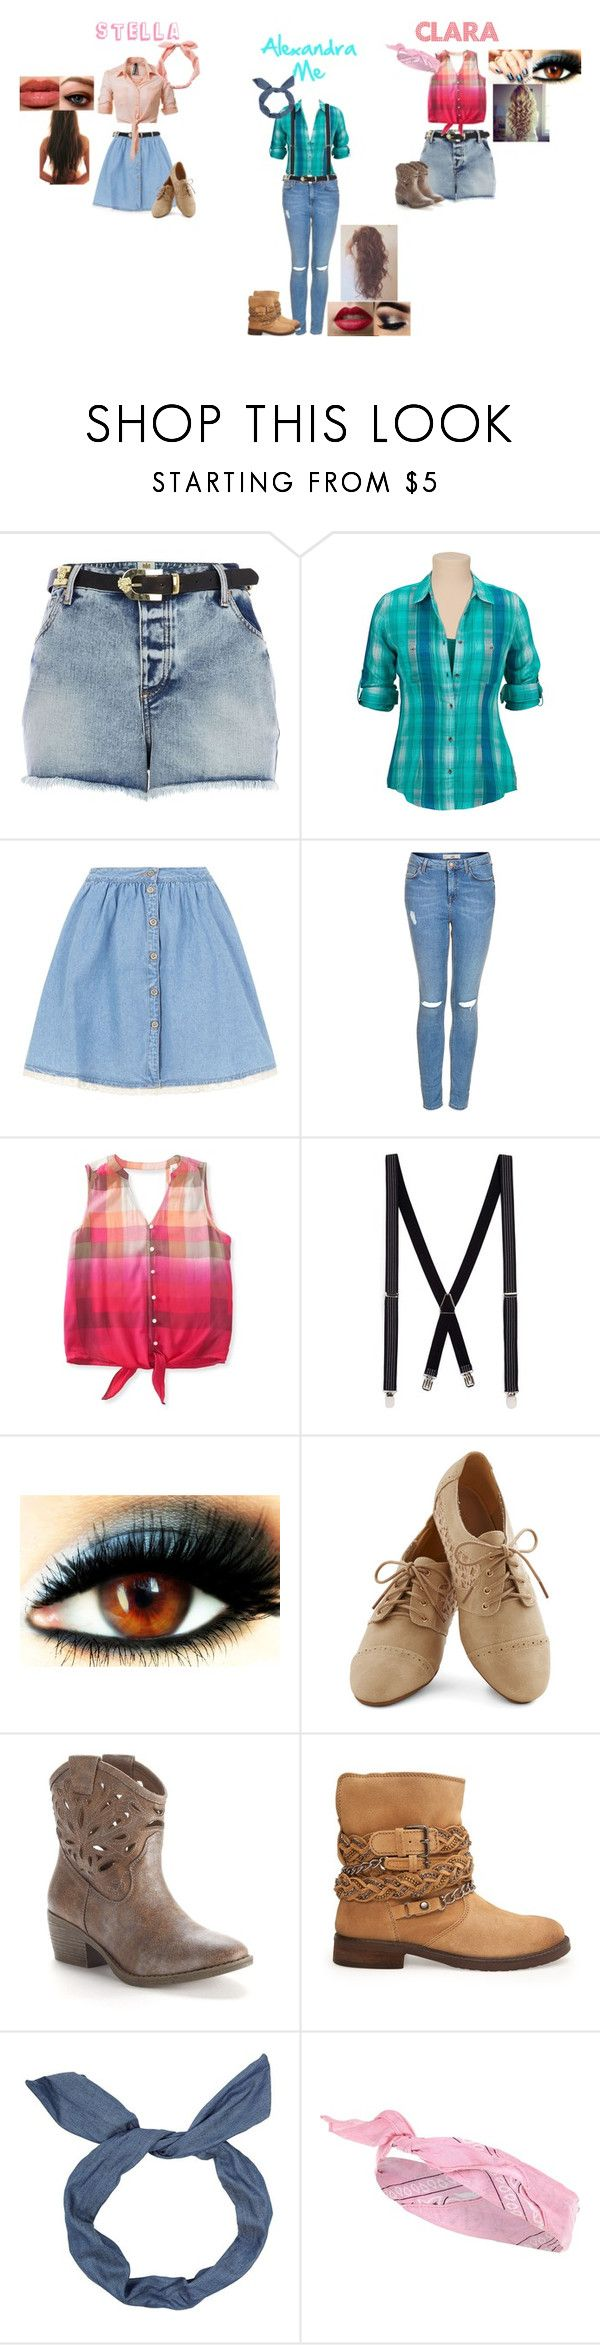 """""""My bests freinds and me,we dance to """"Mean"""""""" by glee2shake ❤ liked on Polyvore featuring River Island, Topshop, Aéropostale, Topman, SO, MANGO and RyuRyu"""